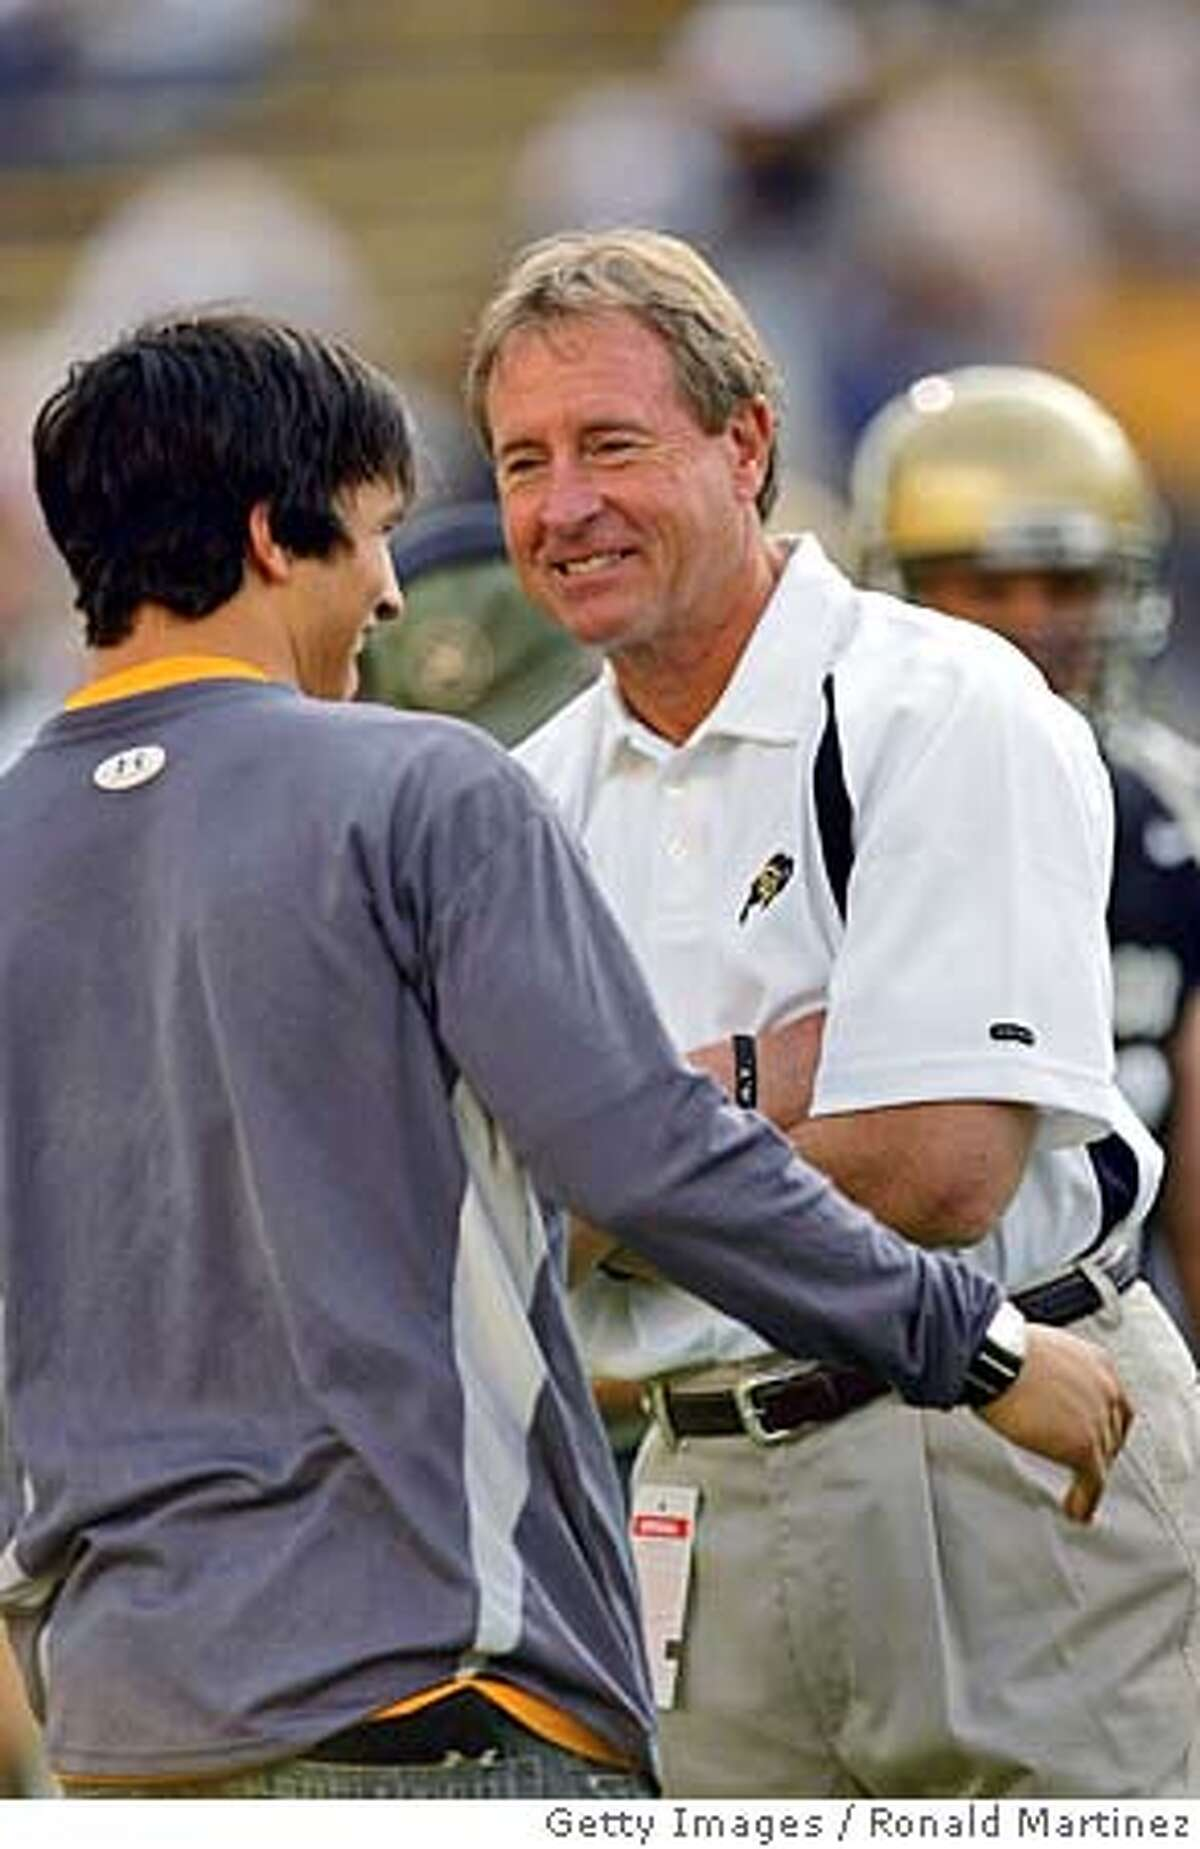 BOULDER, CO - SEPTEMBER 4: Head coach Gary Barnett of the University of Colorado Buffaloes greets former player Jeremy Bloom on September 4, 2004 at Folsom Field in Boulder, Colorado. (Photo by Ronald Martinez/Getty Images) *** Local Caption *** Gary Barnett;Jeremy Bloom